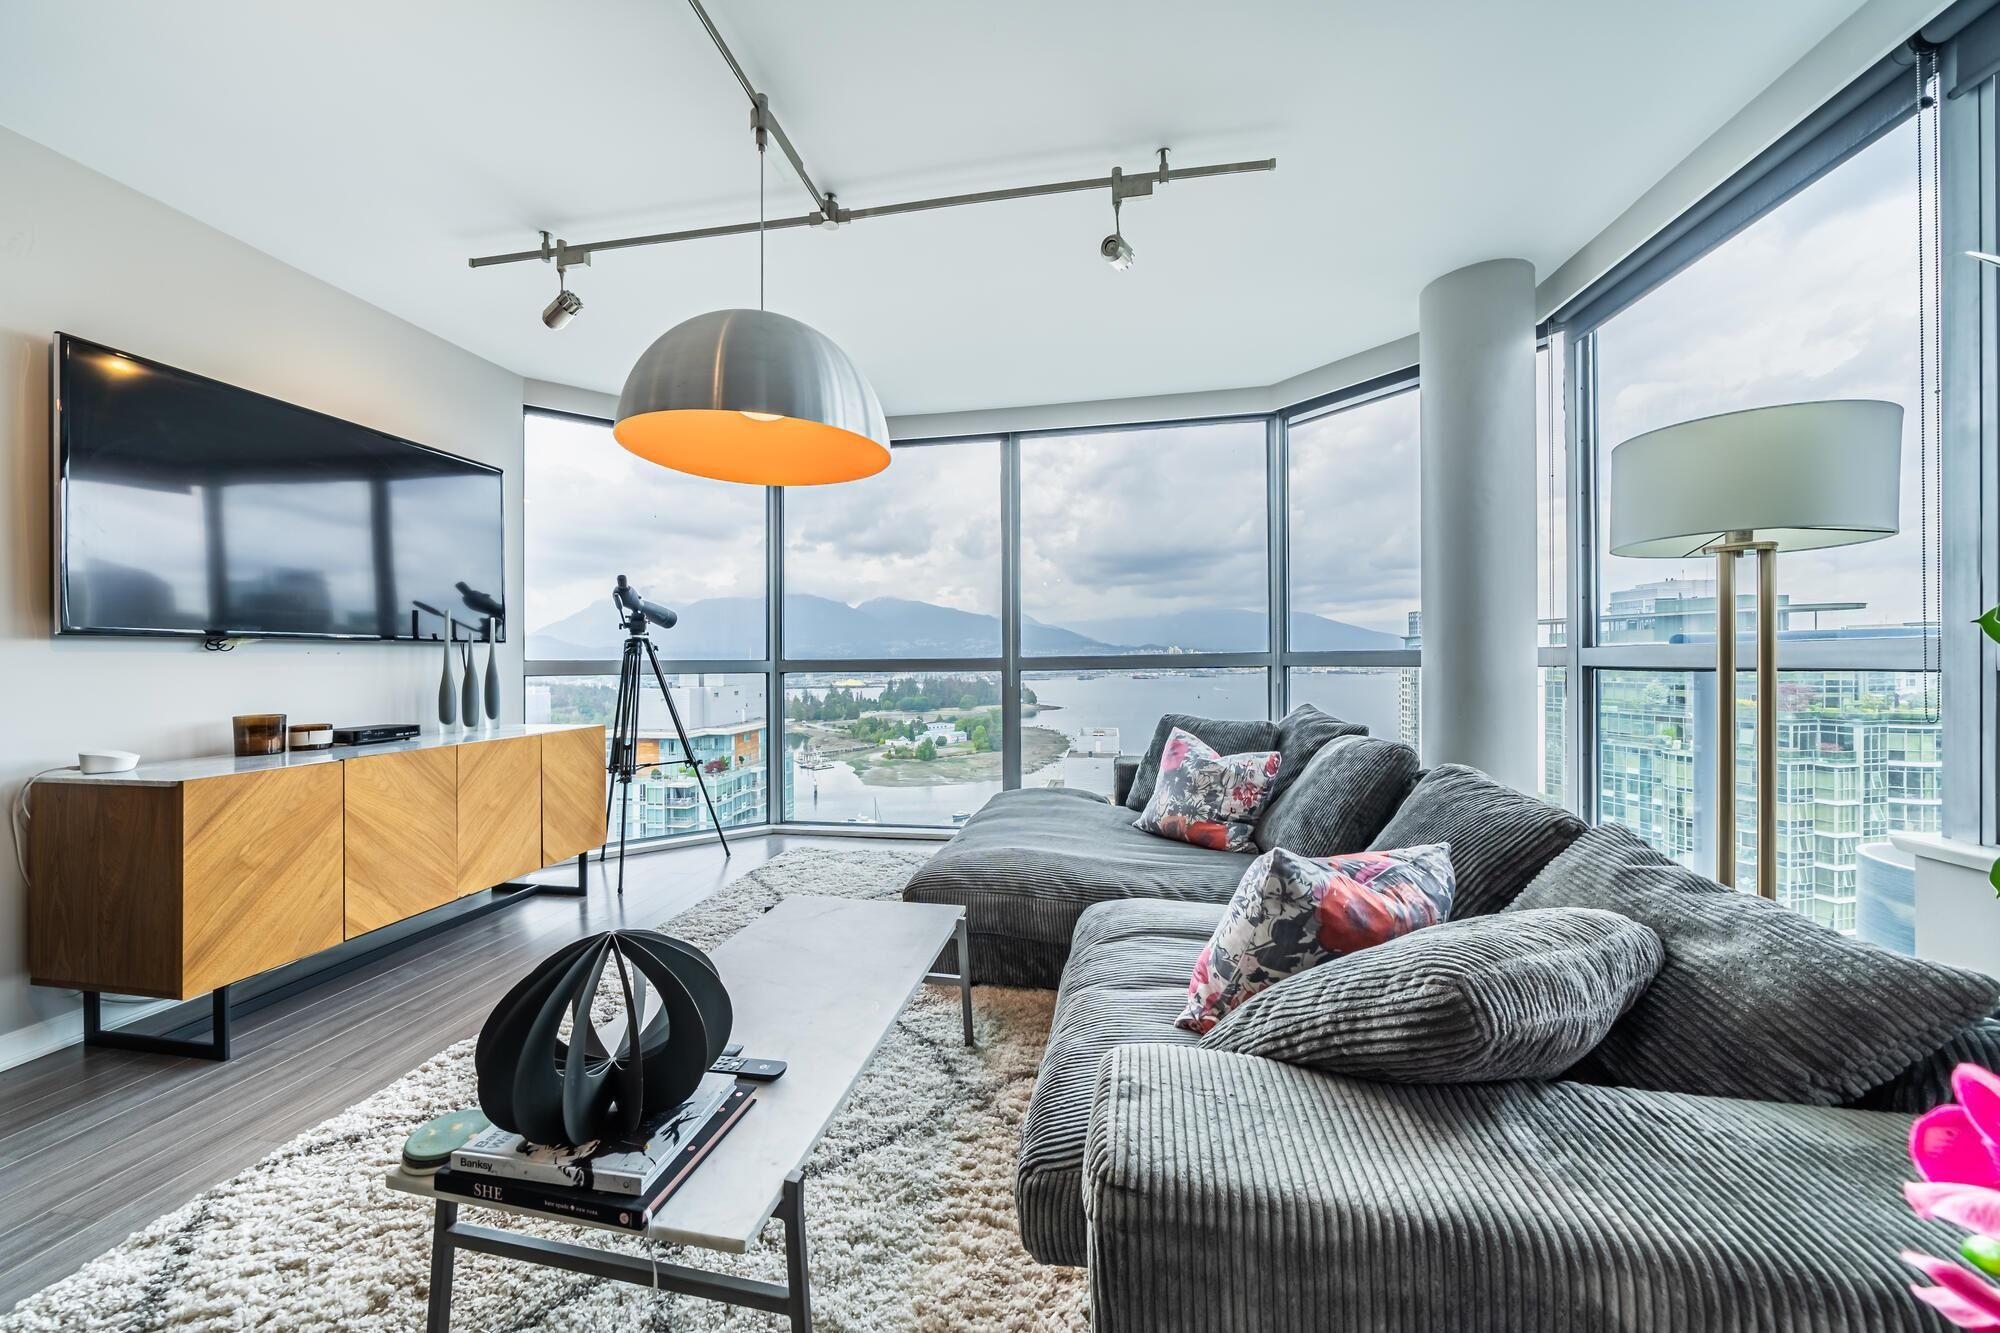 Main Photo: 2403 1415 W GEORGIA STREET in Vancouver: Coal Harbour Condo for sale (Vancouver West)  : MLS®# R2612819